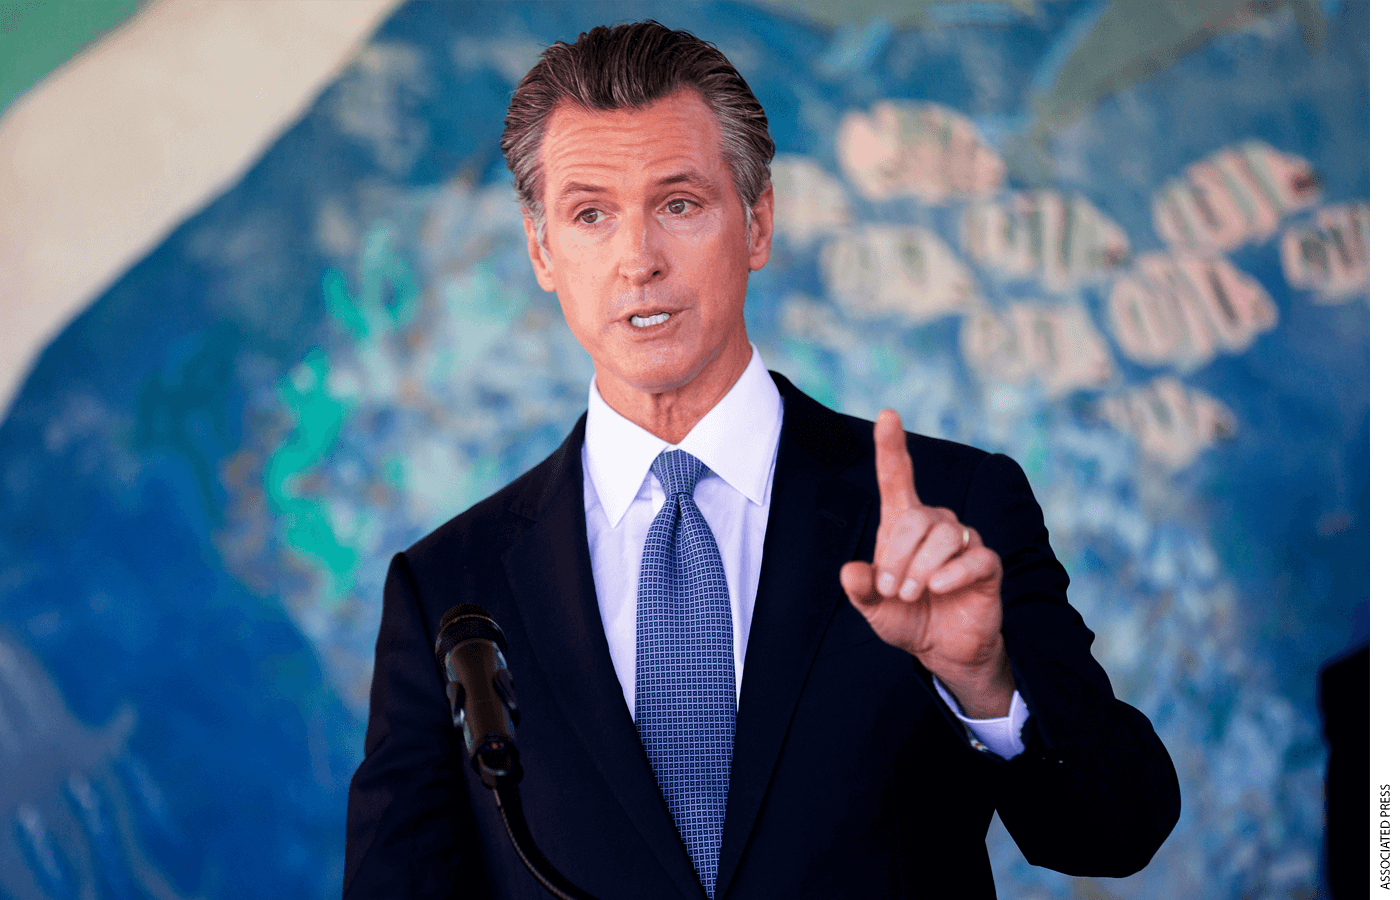 """In this Aug. 11, 2021 file photo, California Gov. Gavin Newsom speaks during a news conference at the Carl B. Munck Elementary School in Oakland, Calif. While talking to reporters during an online interview, Friday, Aug. 13, 2021, Republican Larry Elder promised that if Newsom is ousted in the Sept. 14 election, any mask or vaccine mandates in place at the time """"will be suspended right away"""""""